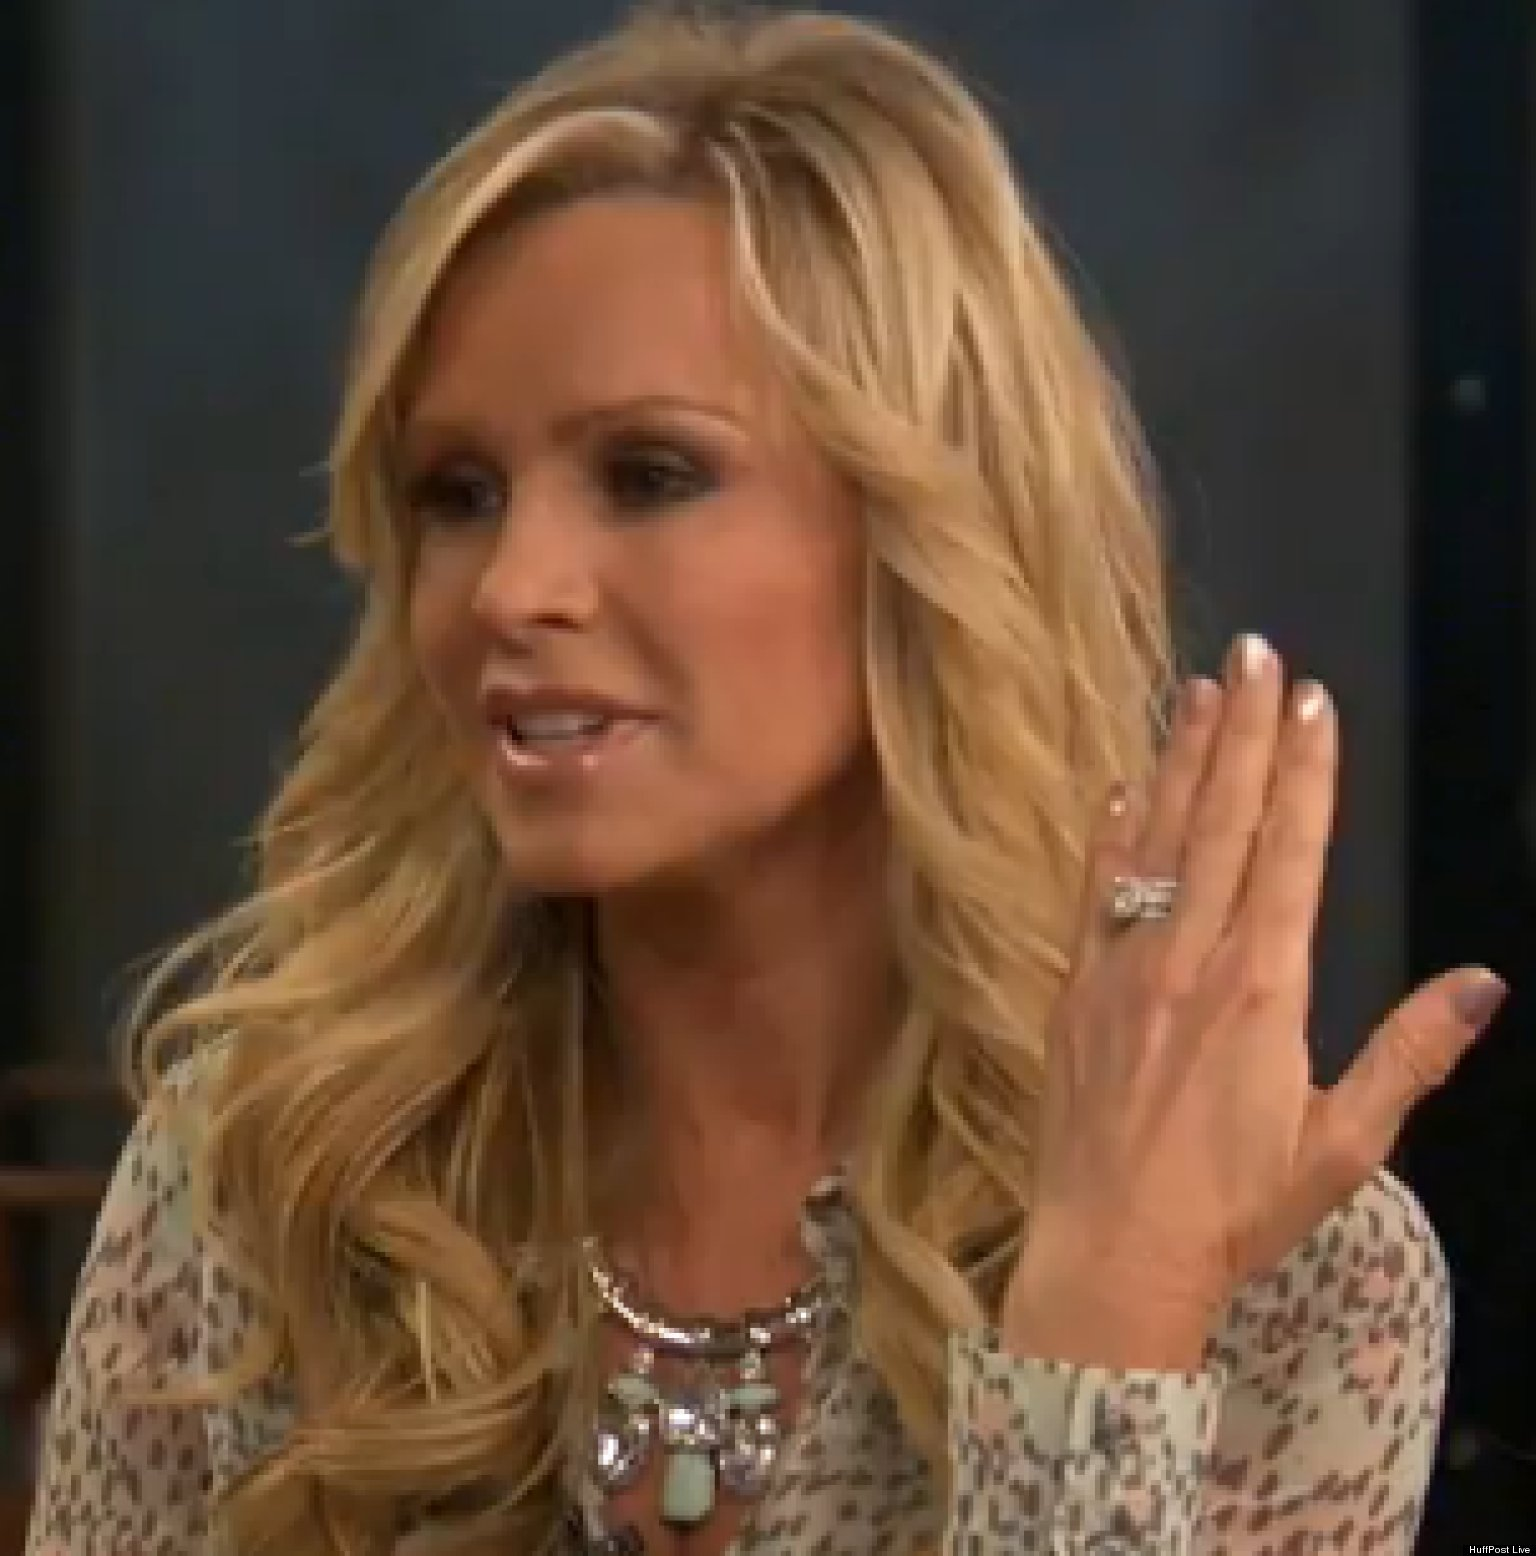 TAMRA-BARNEY-REAL-HOUSEWIVES-facebook.jpg